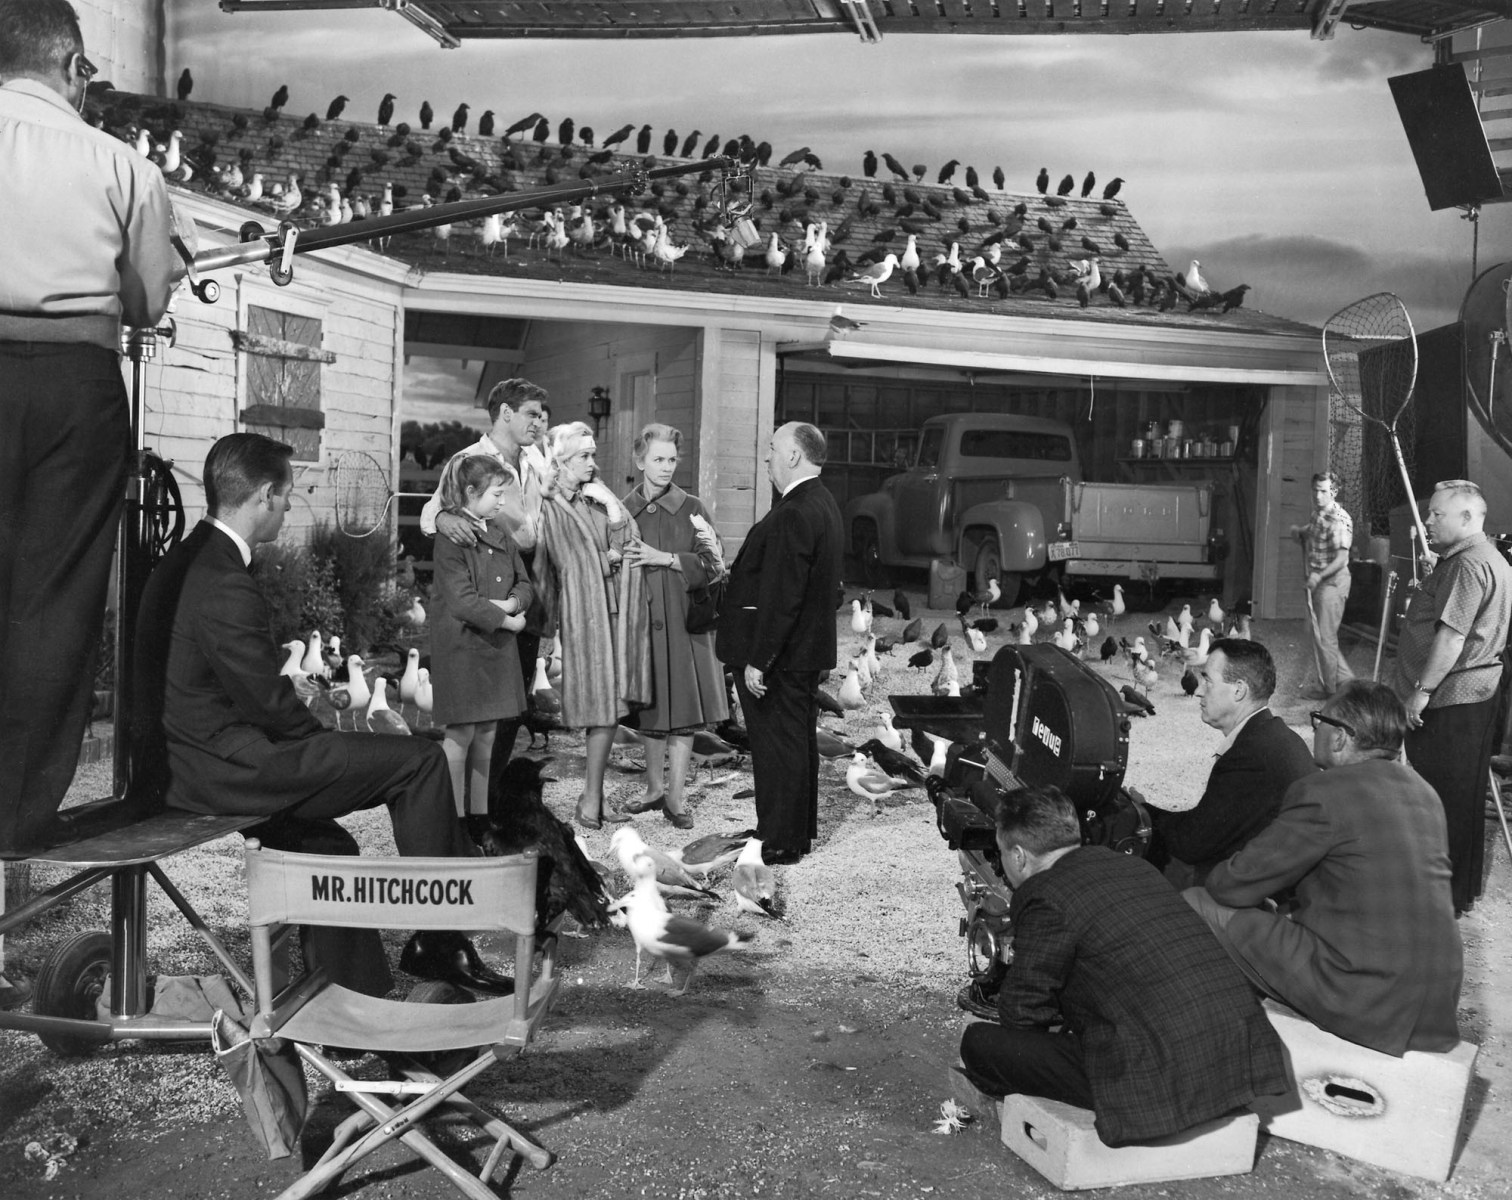 A Beautiful Image From The Movie The Birds (1963) Behind the Scenes